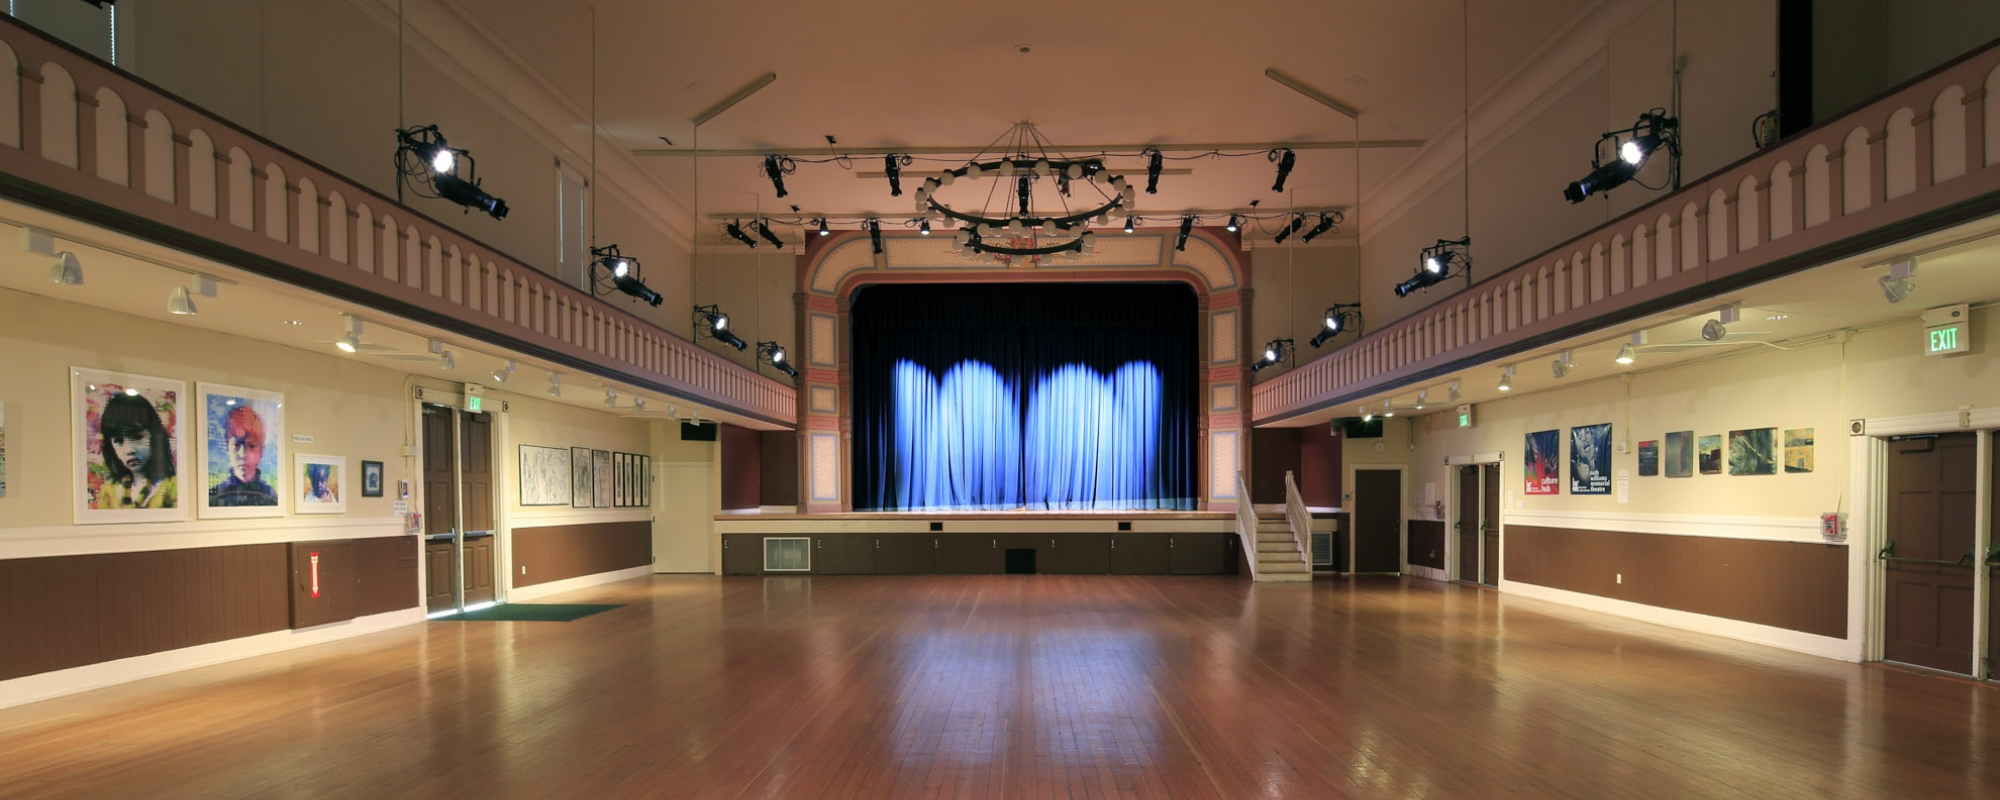 Bayview Opera House interior